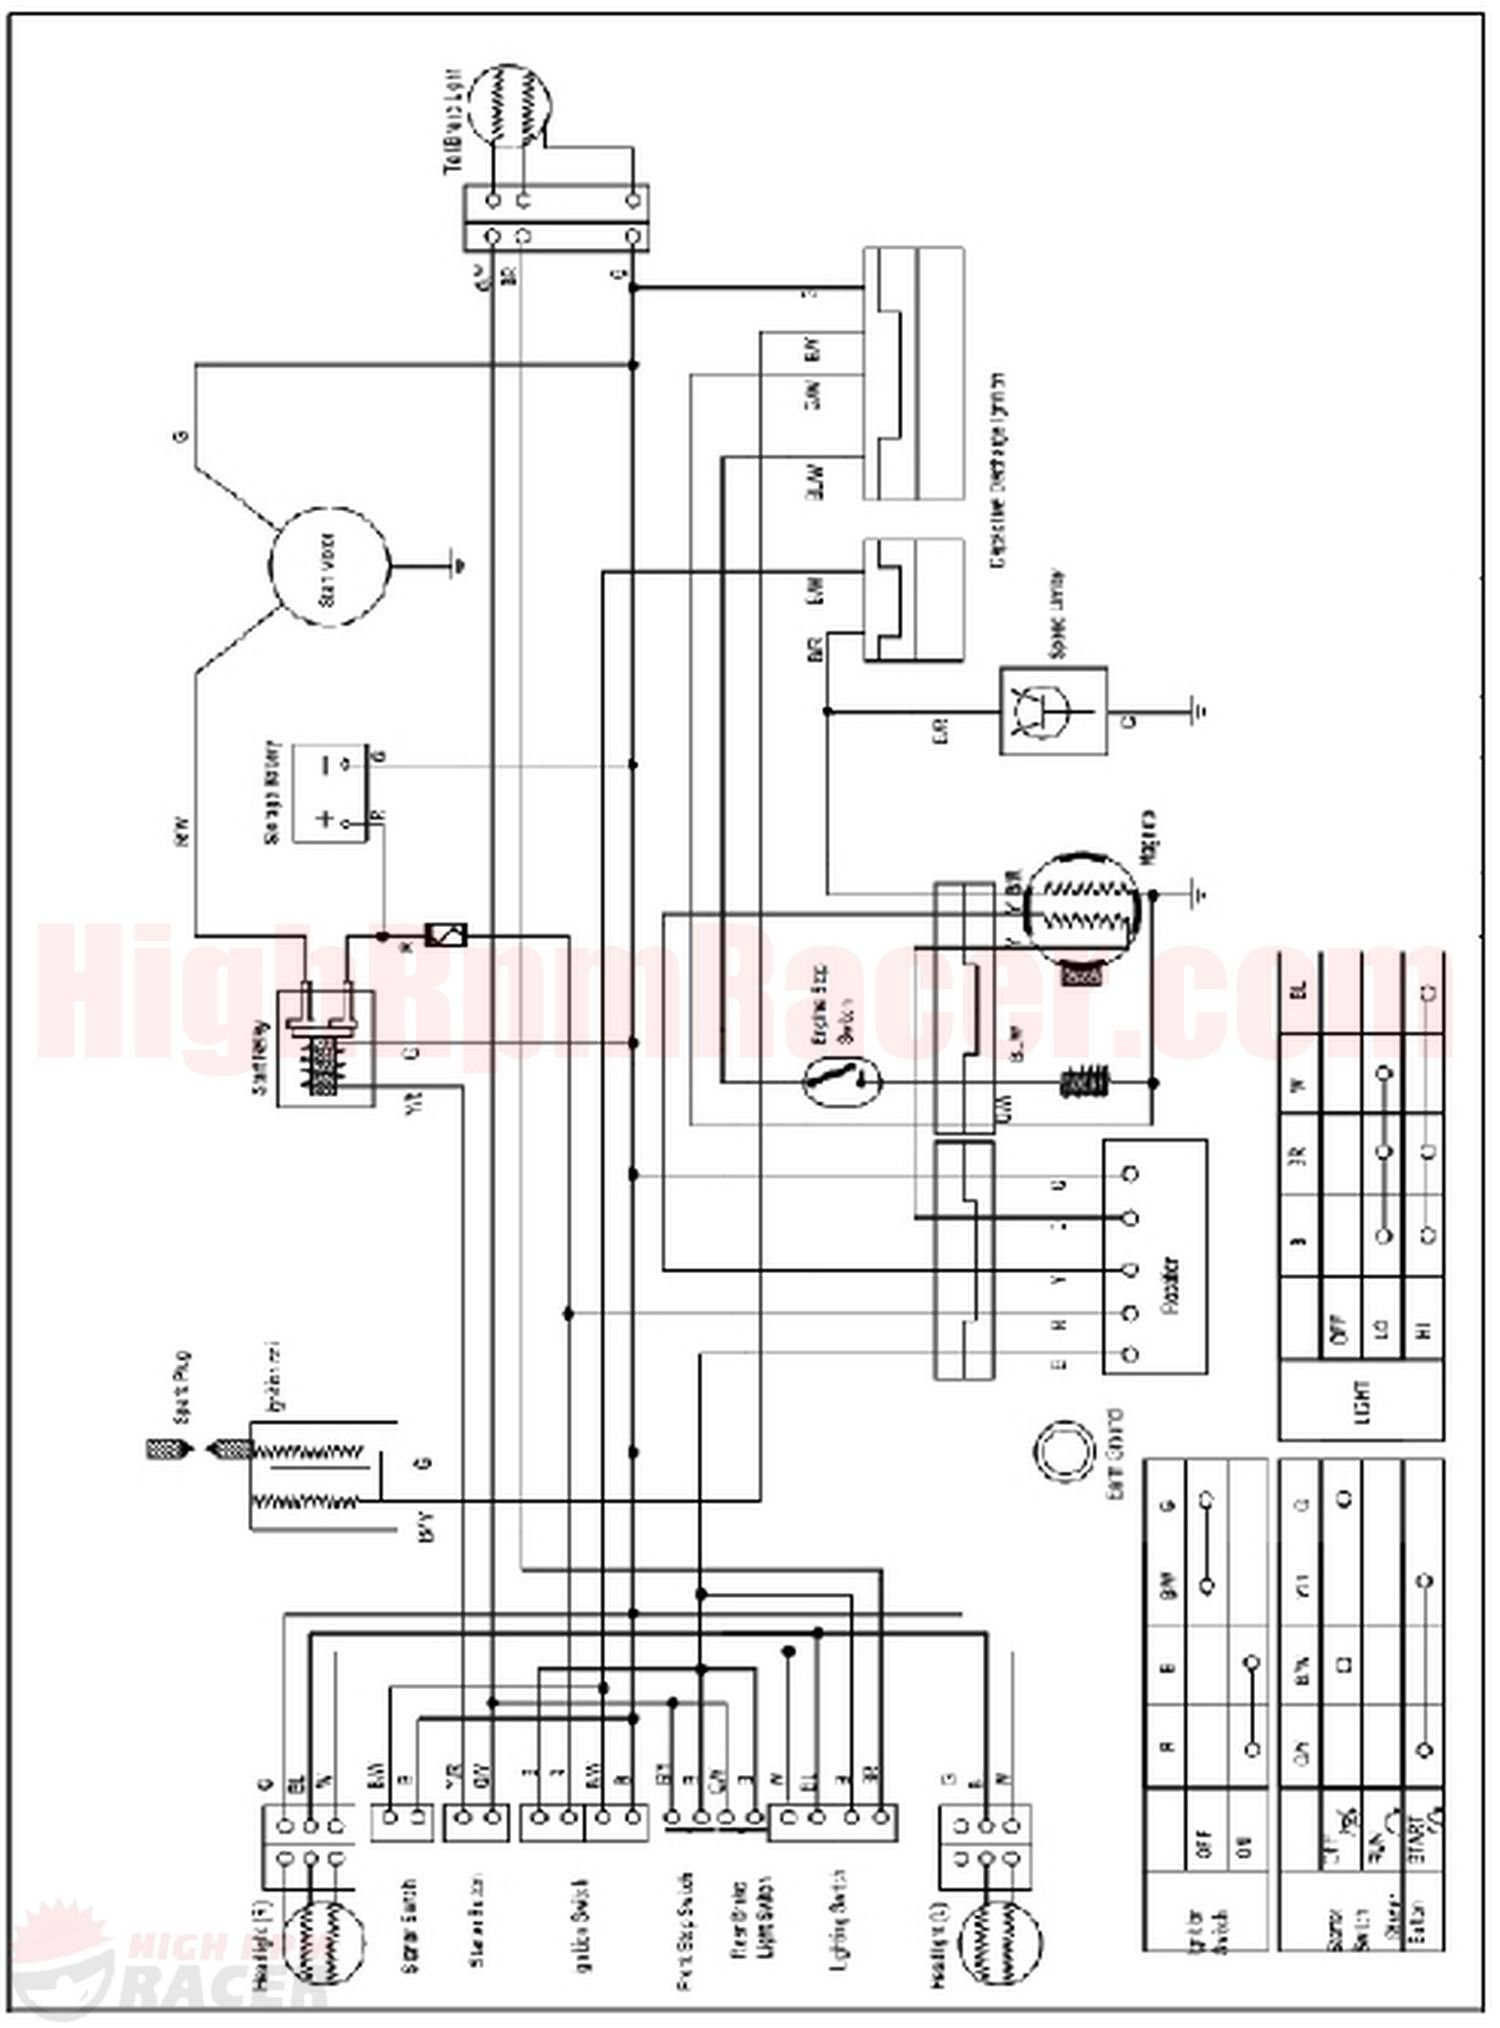 sunl250_wd sunl atv 250 wiring diagram $0 00 roketa atv wiring diagram at readyjetset.co